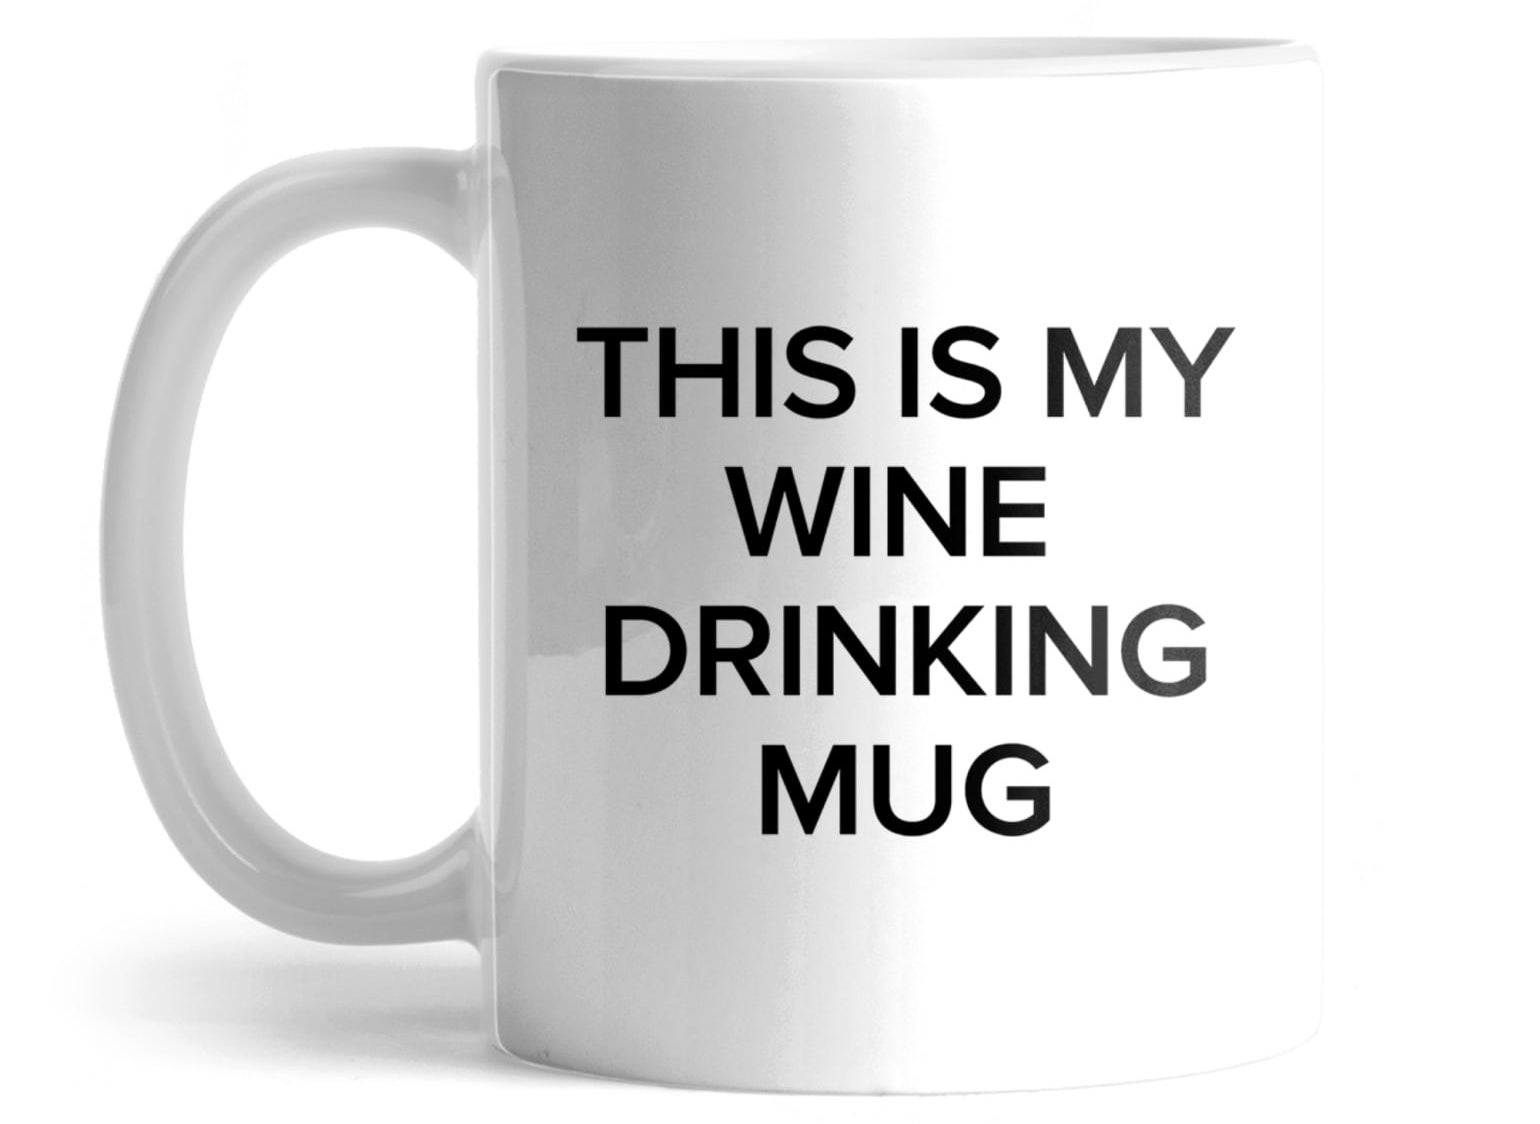 """the white mug with text that reads """"this is my wine drinking mug"""" in black text"""